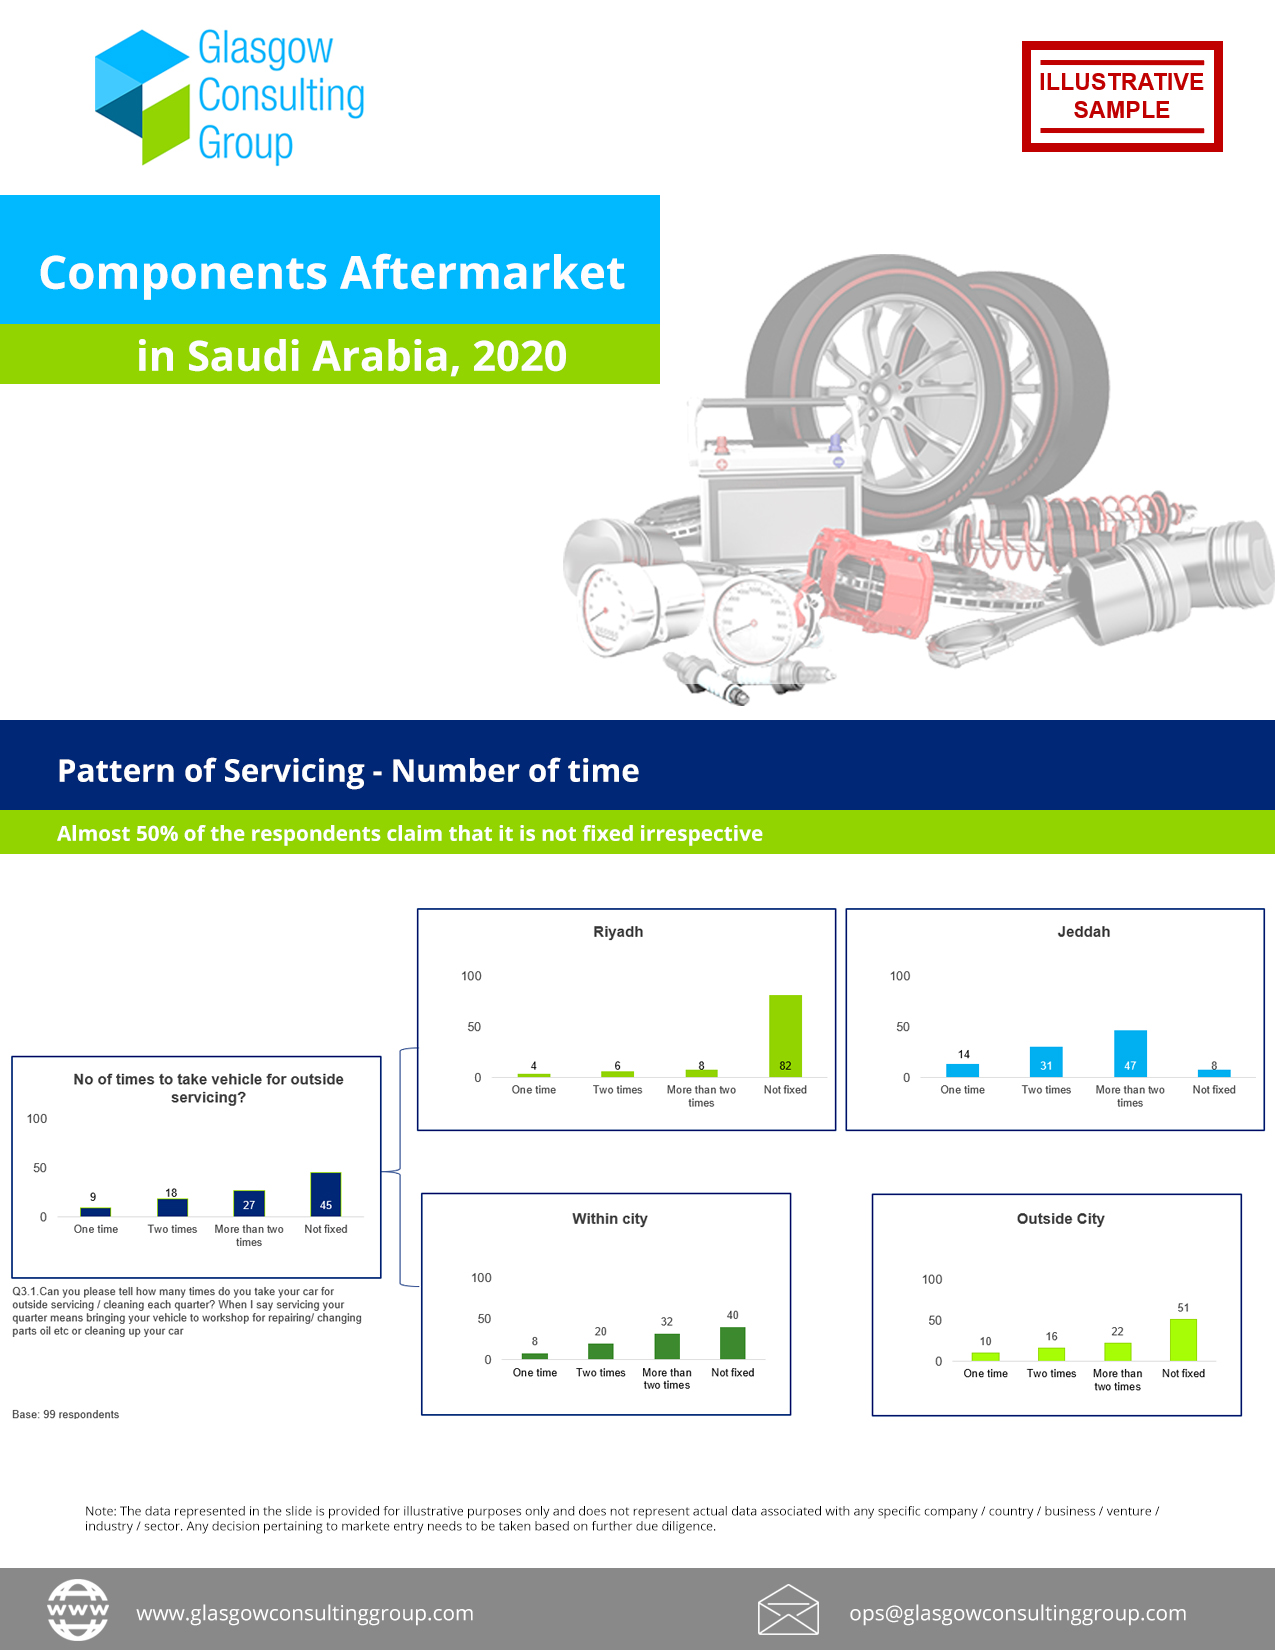 Components Aftermarket in Saudi Arabia, 2020